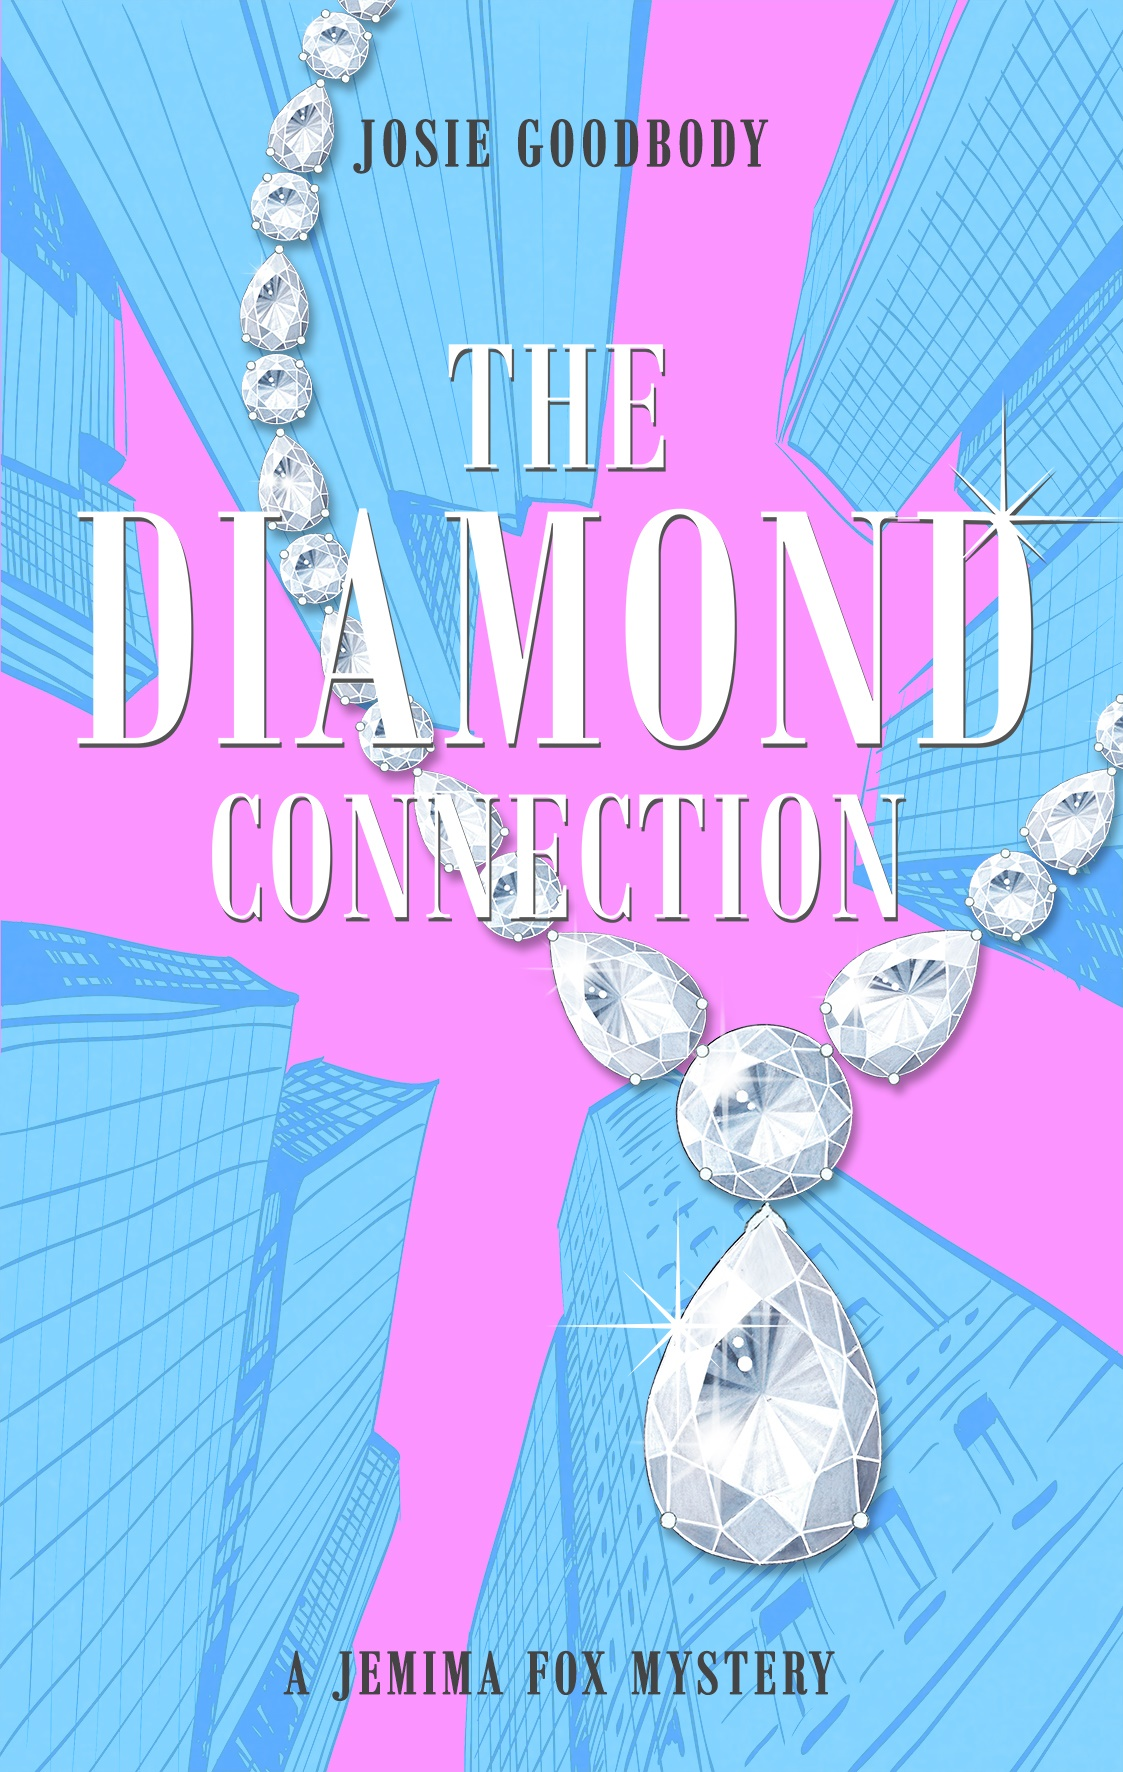 The Diamond Connection